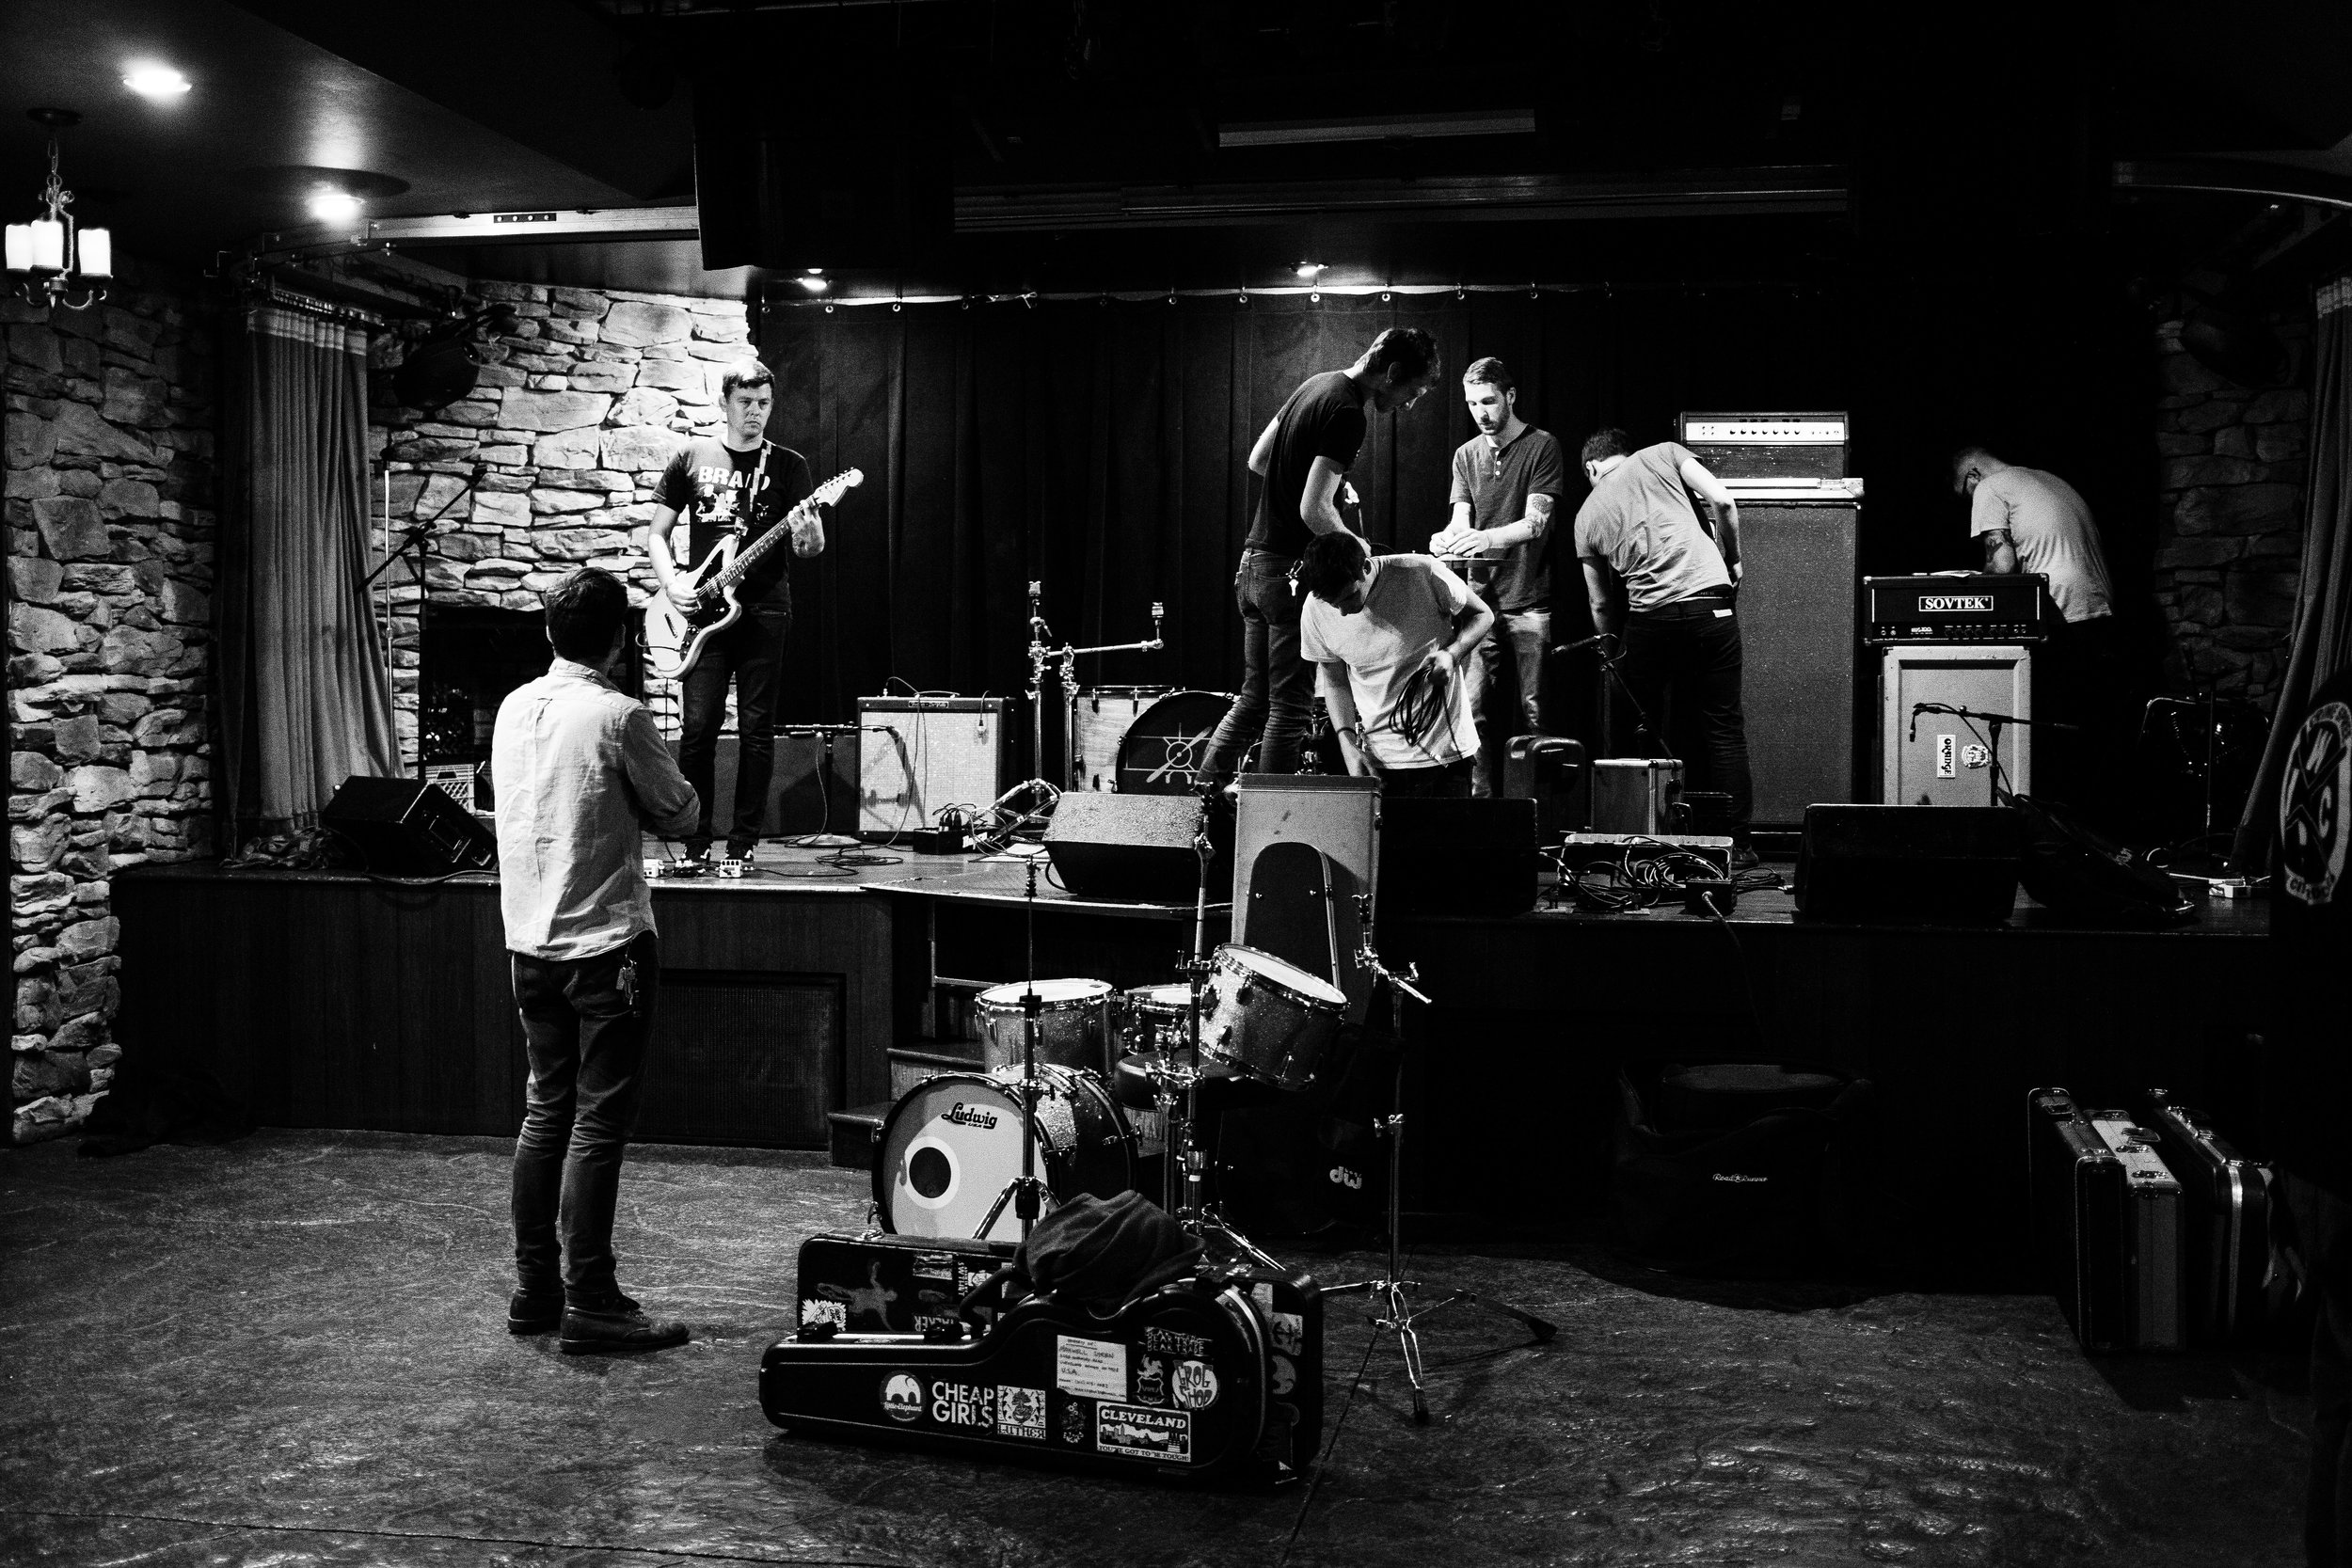 Signals Midwest set up for sound check in Chicago, Illinois, October 7, 2016.